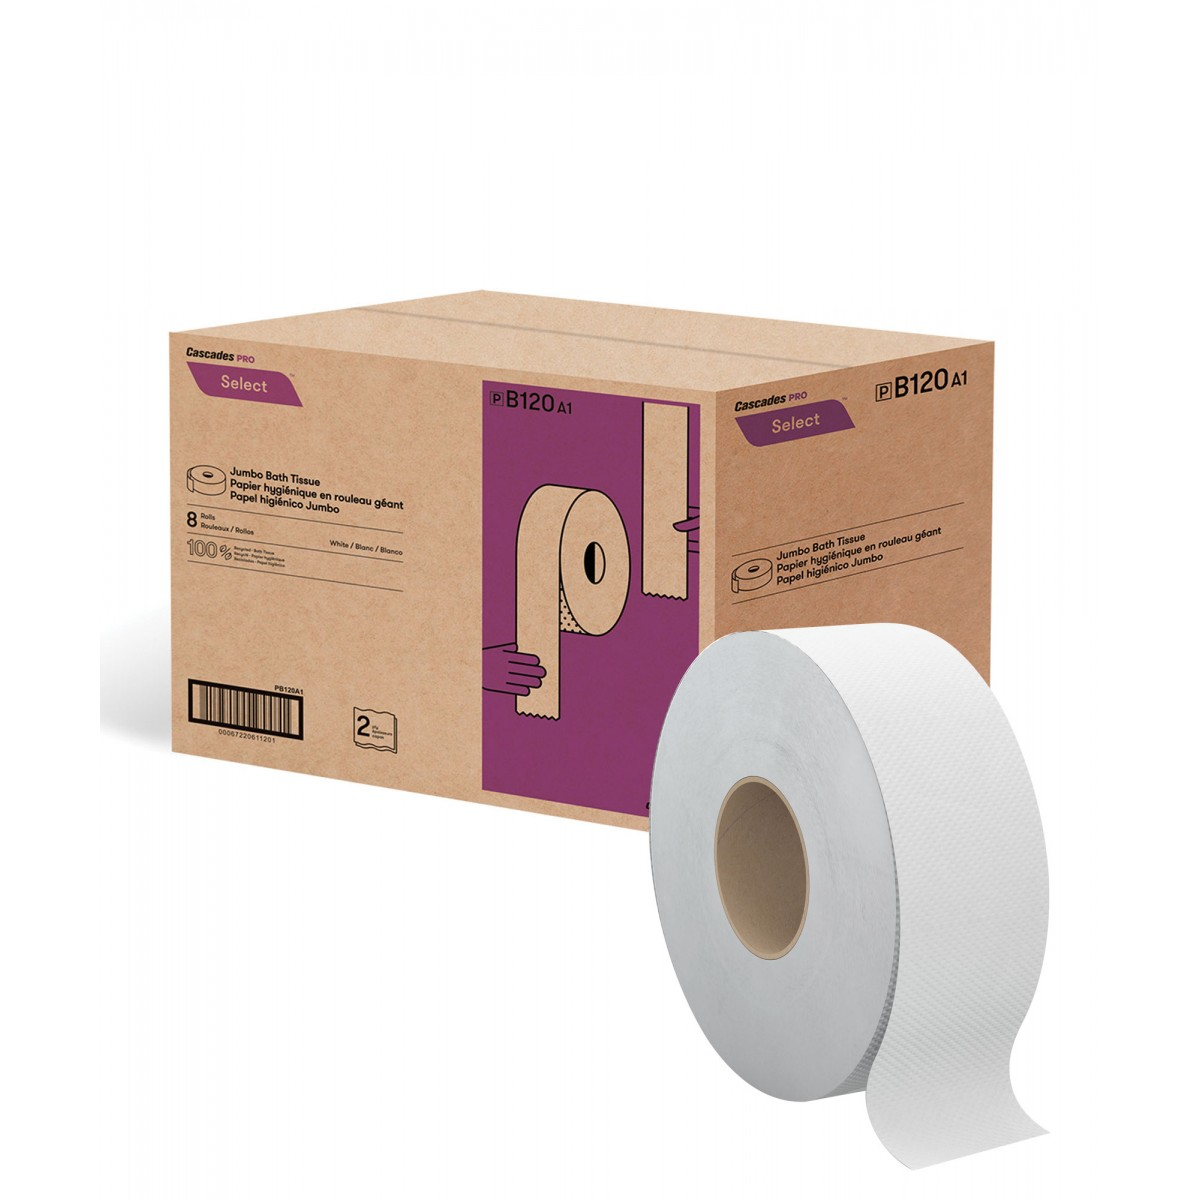 cascades paper Cascades tandem x2 bathroom tissue dispenser smoke gray, controlled release reduces consumption, fully covered spare roll for maximum hygiene at office depot & officemax.